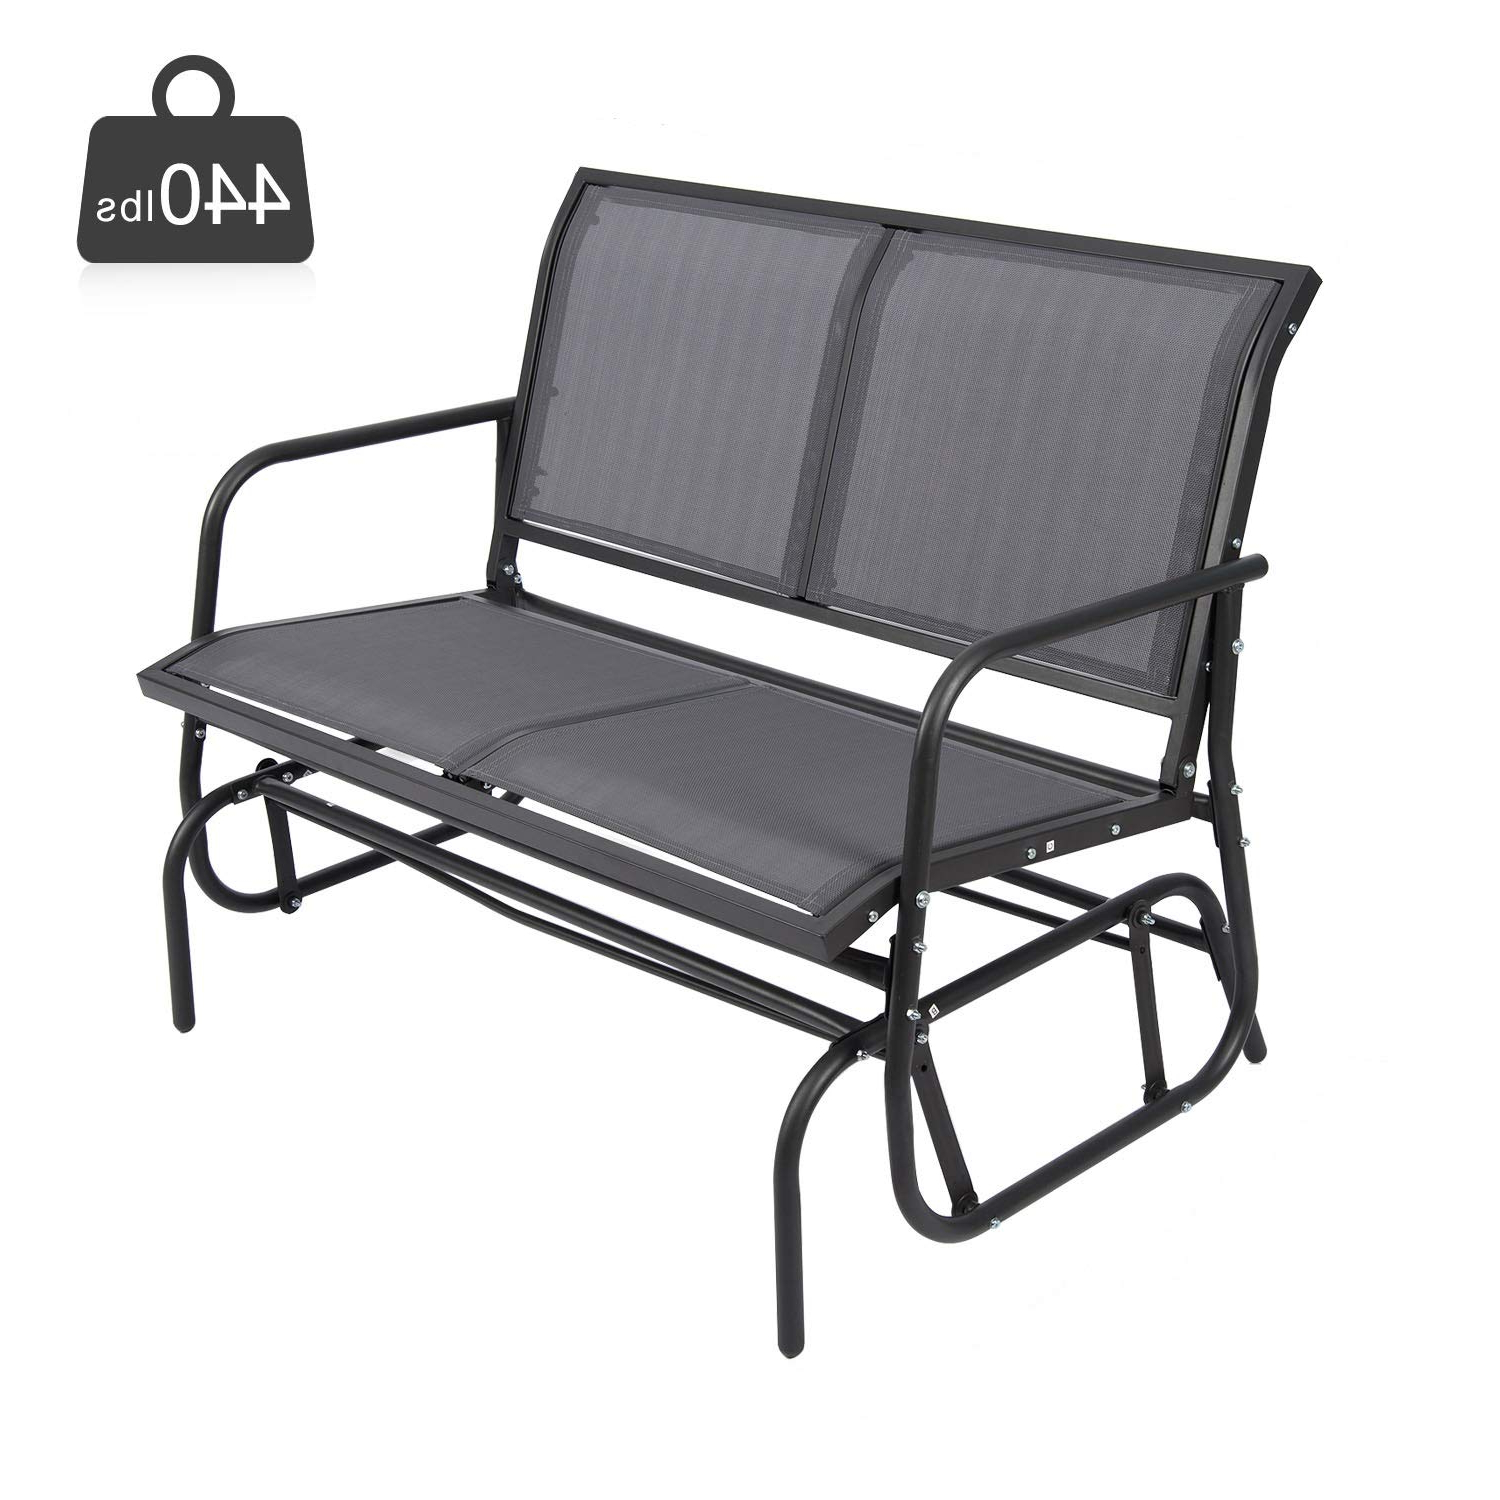 Preferred 2 Person Loveseat Chair Patio Porch Swings With Rocker Pertaining To Amazon: Fullwatt Outdoor Swing Glider Chair, Patio Bench (View 5 of 30)